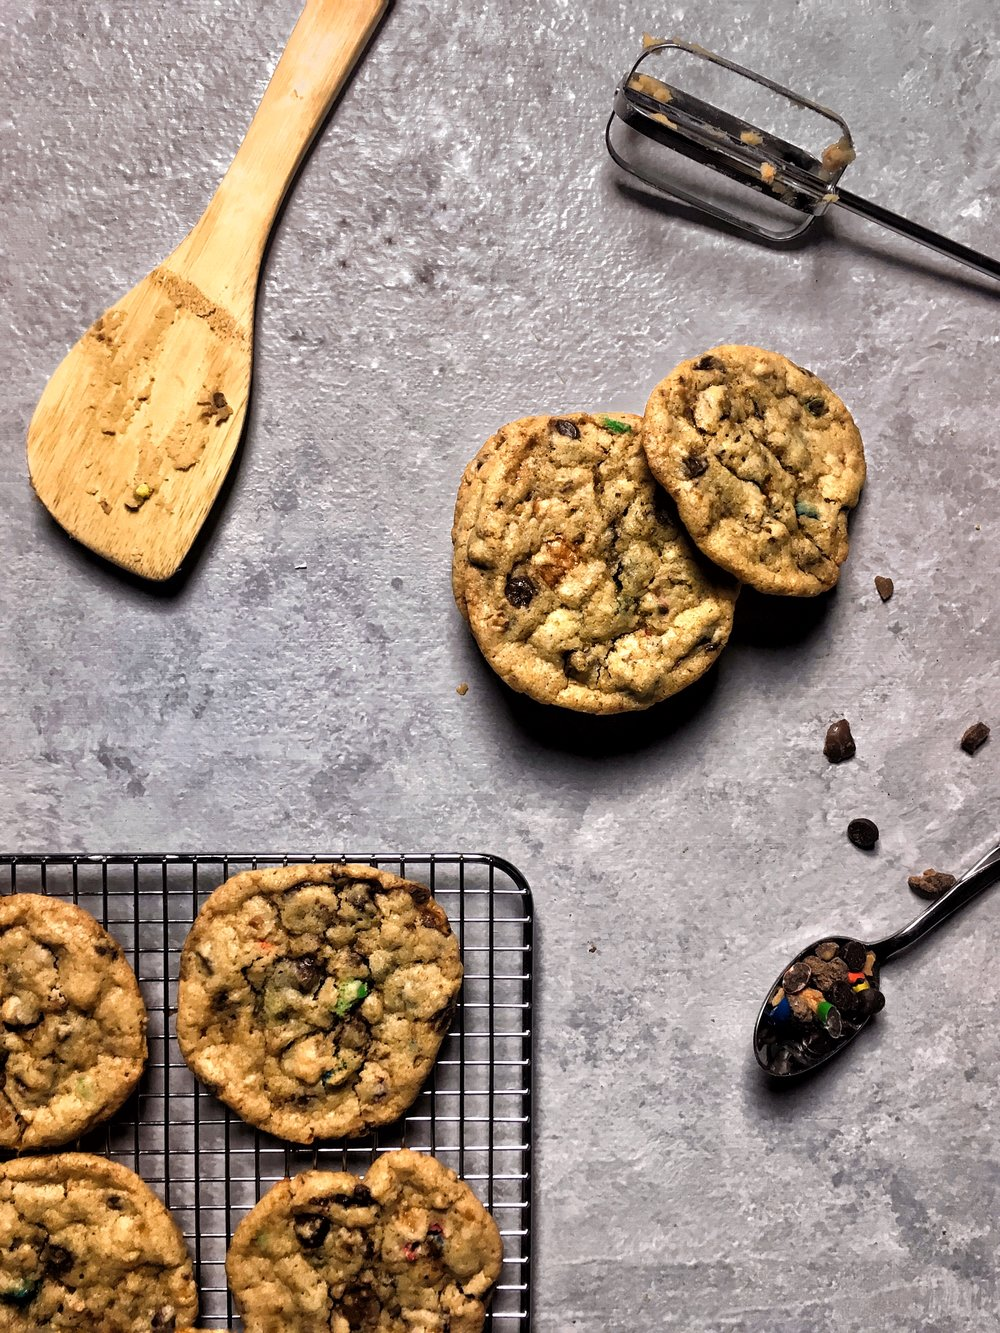 Candy Bar Chocolate Chip Cookies - Brad & Butter | Feb 18, 2019